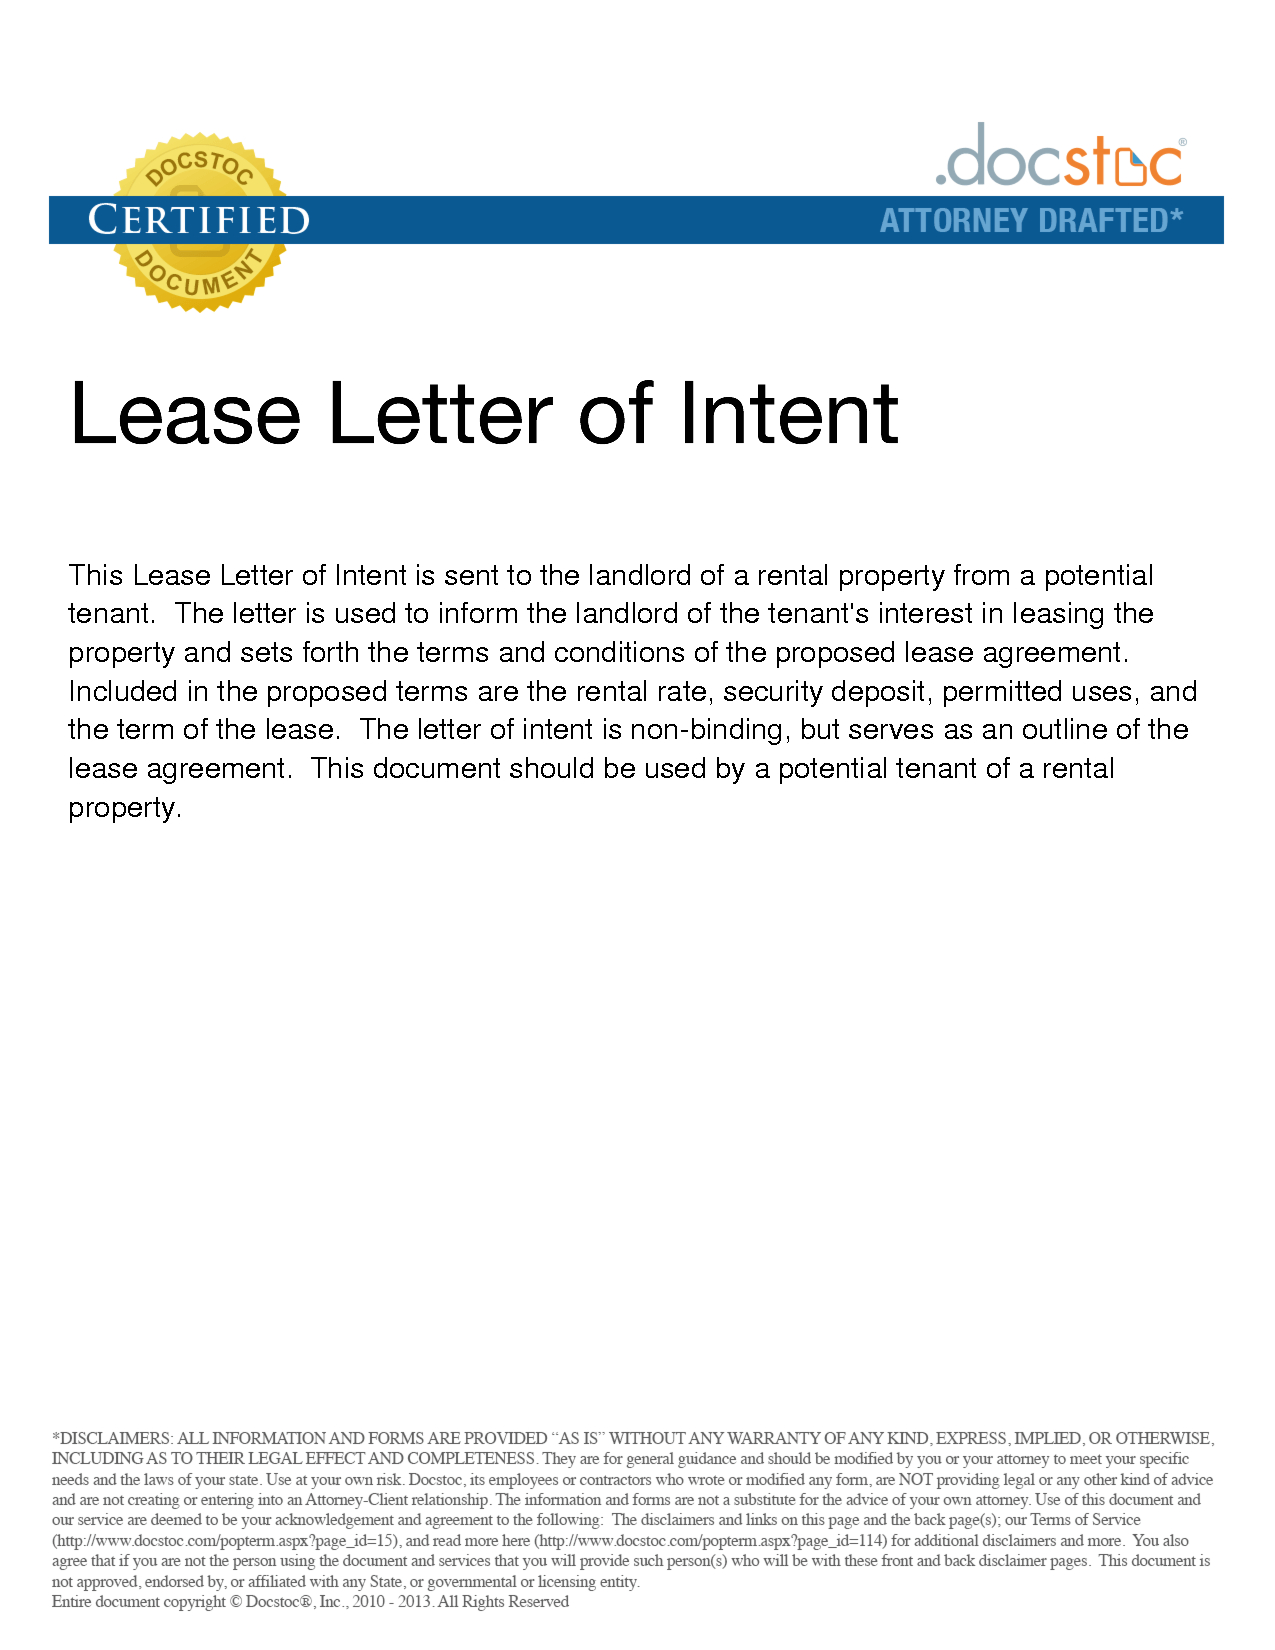 Letter Of Intent to Lease Commercial Property Template - Sample Letter Intent to Lease Real Estate Property Residential